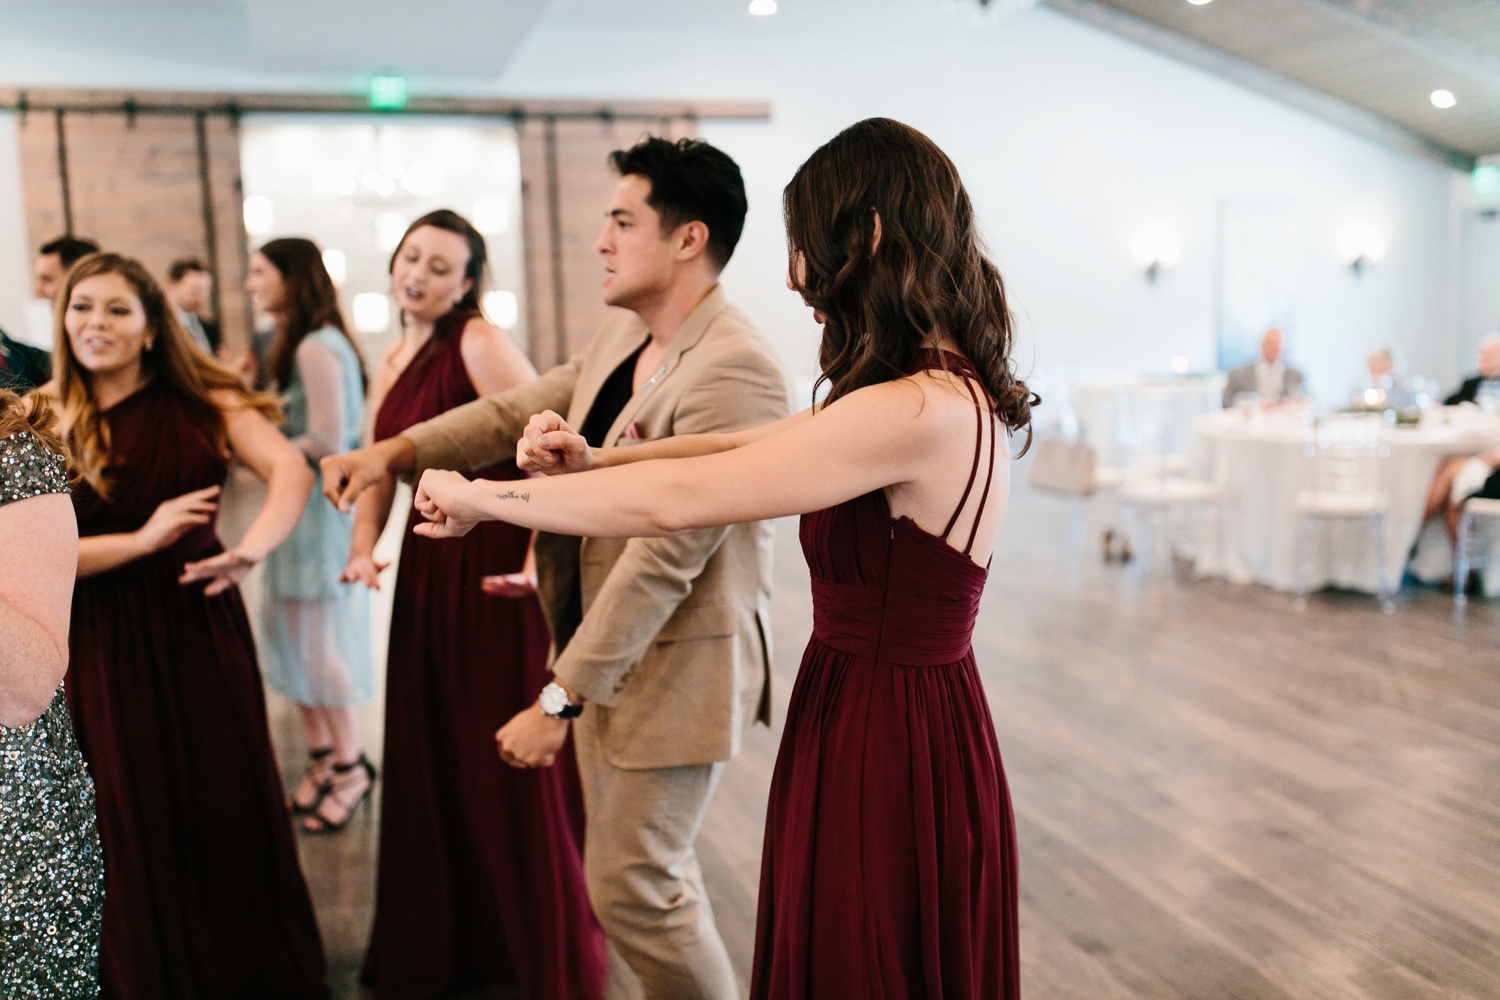 Grant + Lysette | a vibrant, deep burgundy and navy, and mixed metals wedding at Hidden Pines Chapel by North Texas Wedding Photographer Rachel Meagan Photography 163